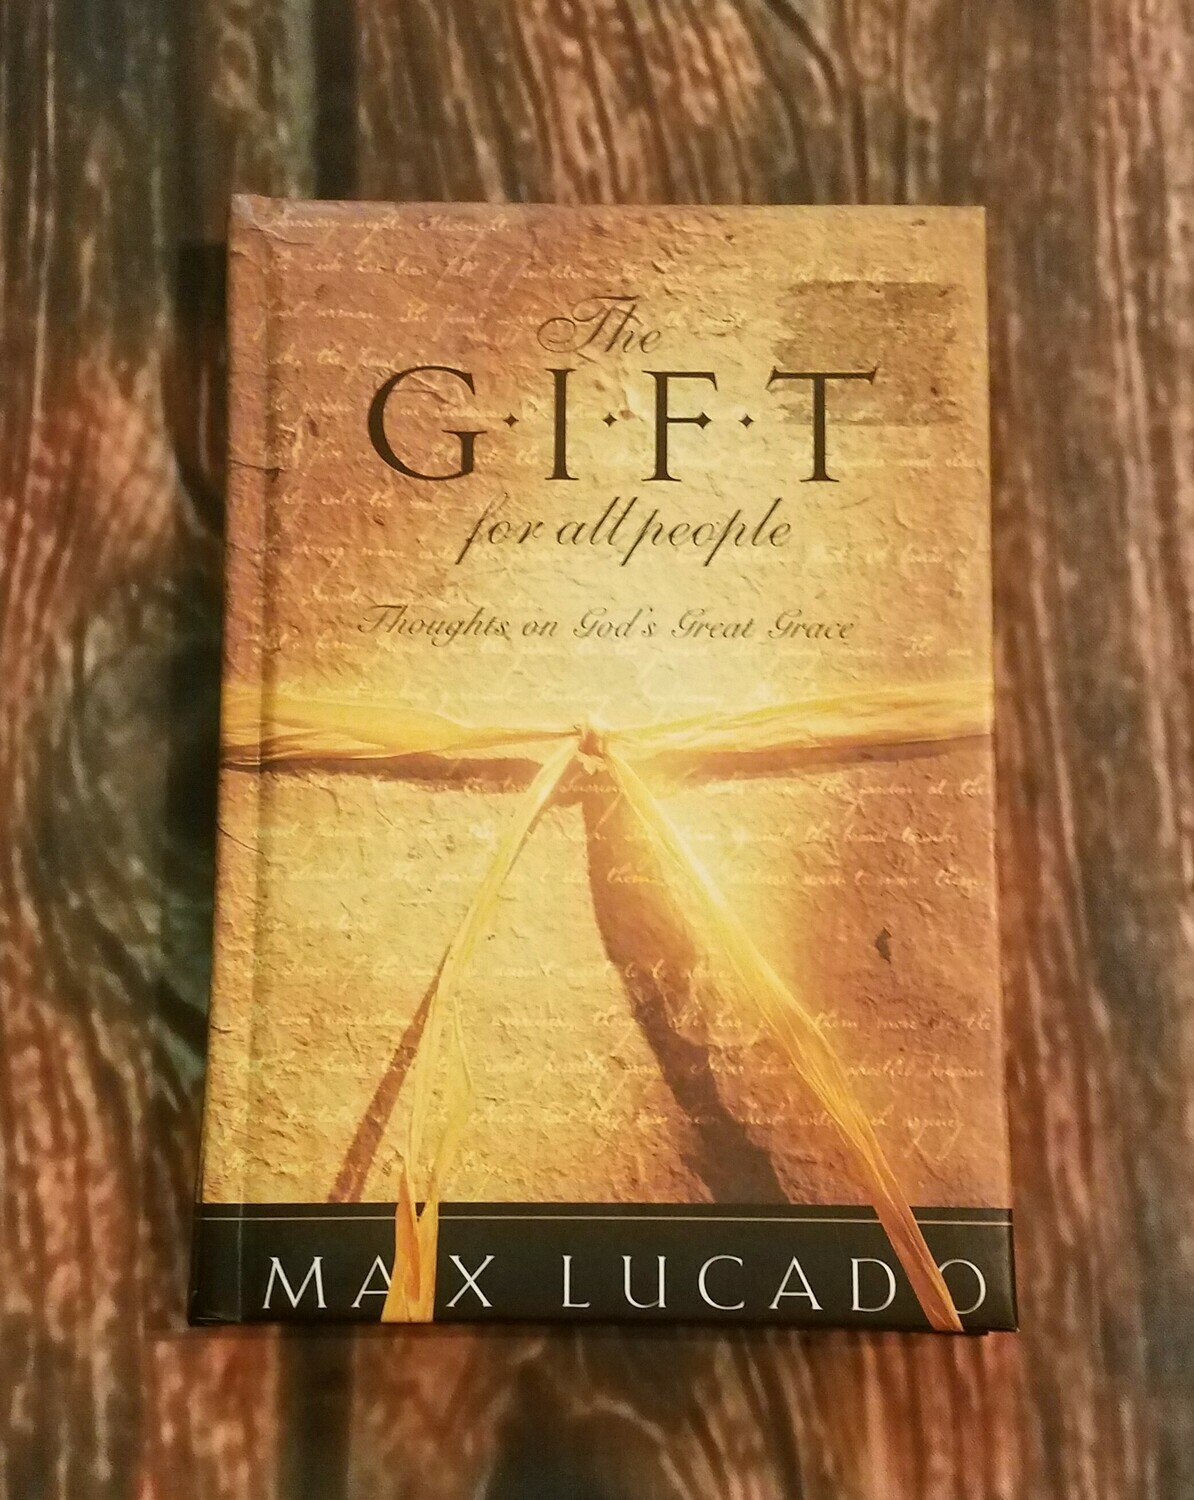 The G.I.F.T for all People by Max Lucado - Hardback